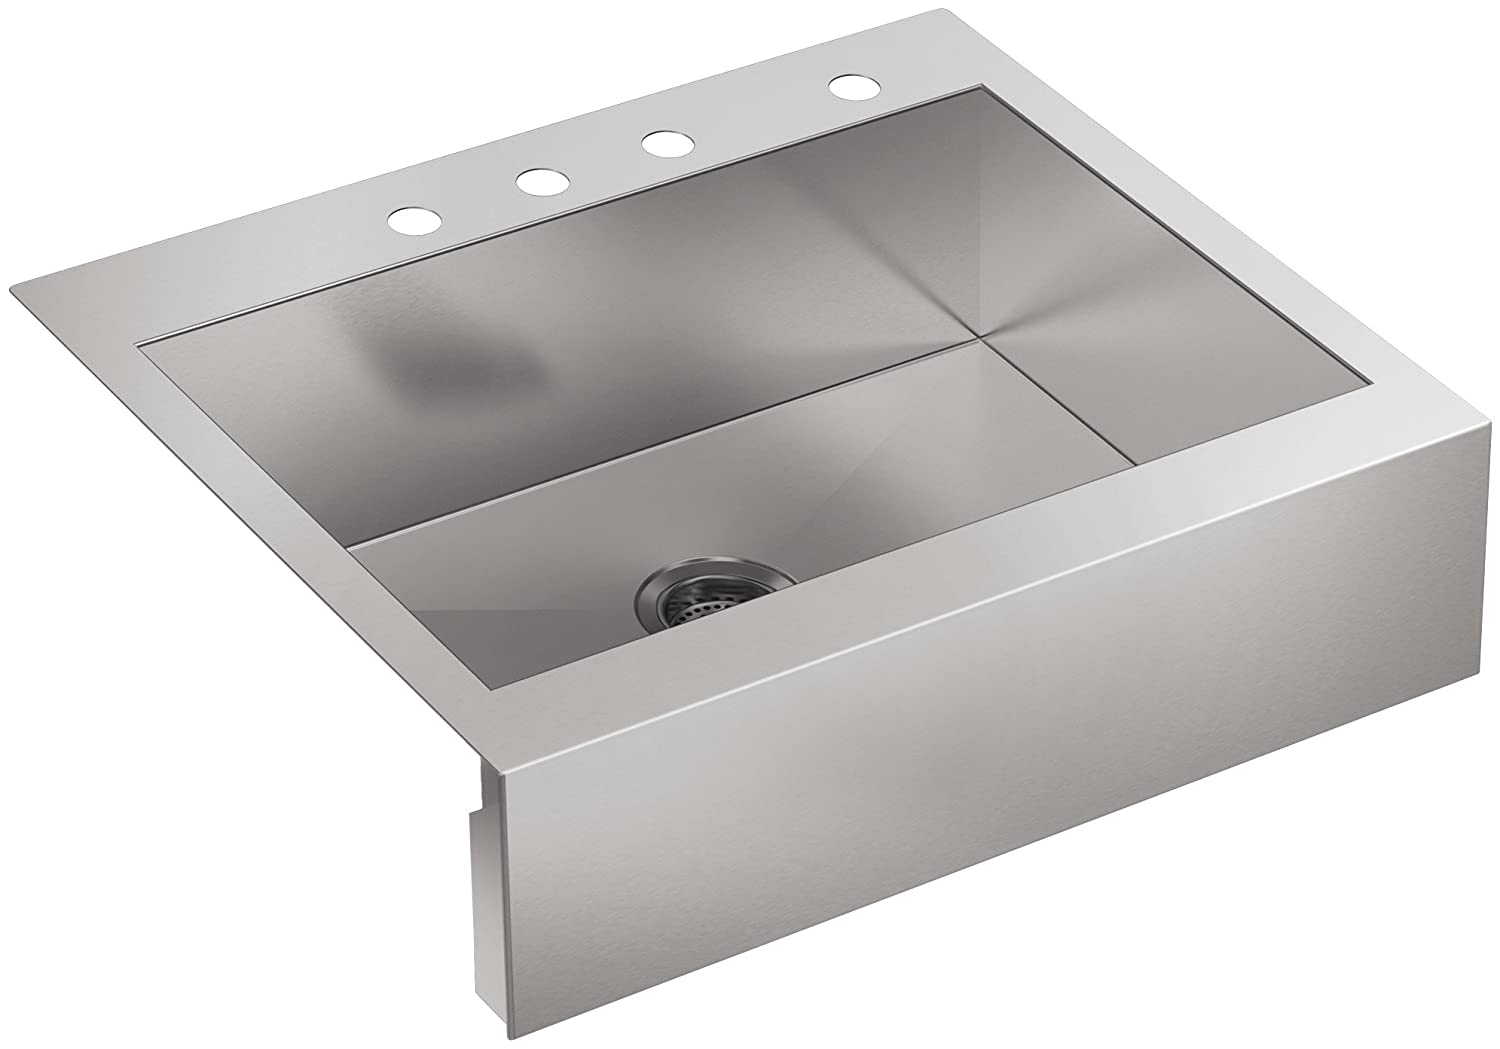 Kohler 3935-4-NA Top-Mount Single-Bowl Stainless steel Kitchen Sink with Tall Apron For 30 inch Cabinet